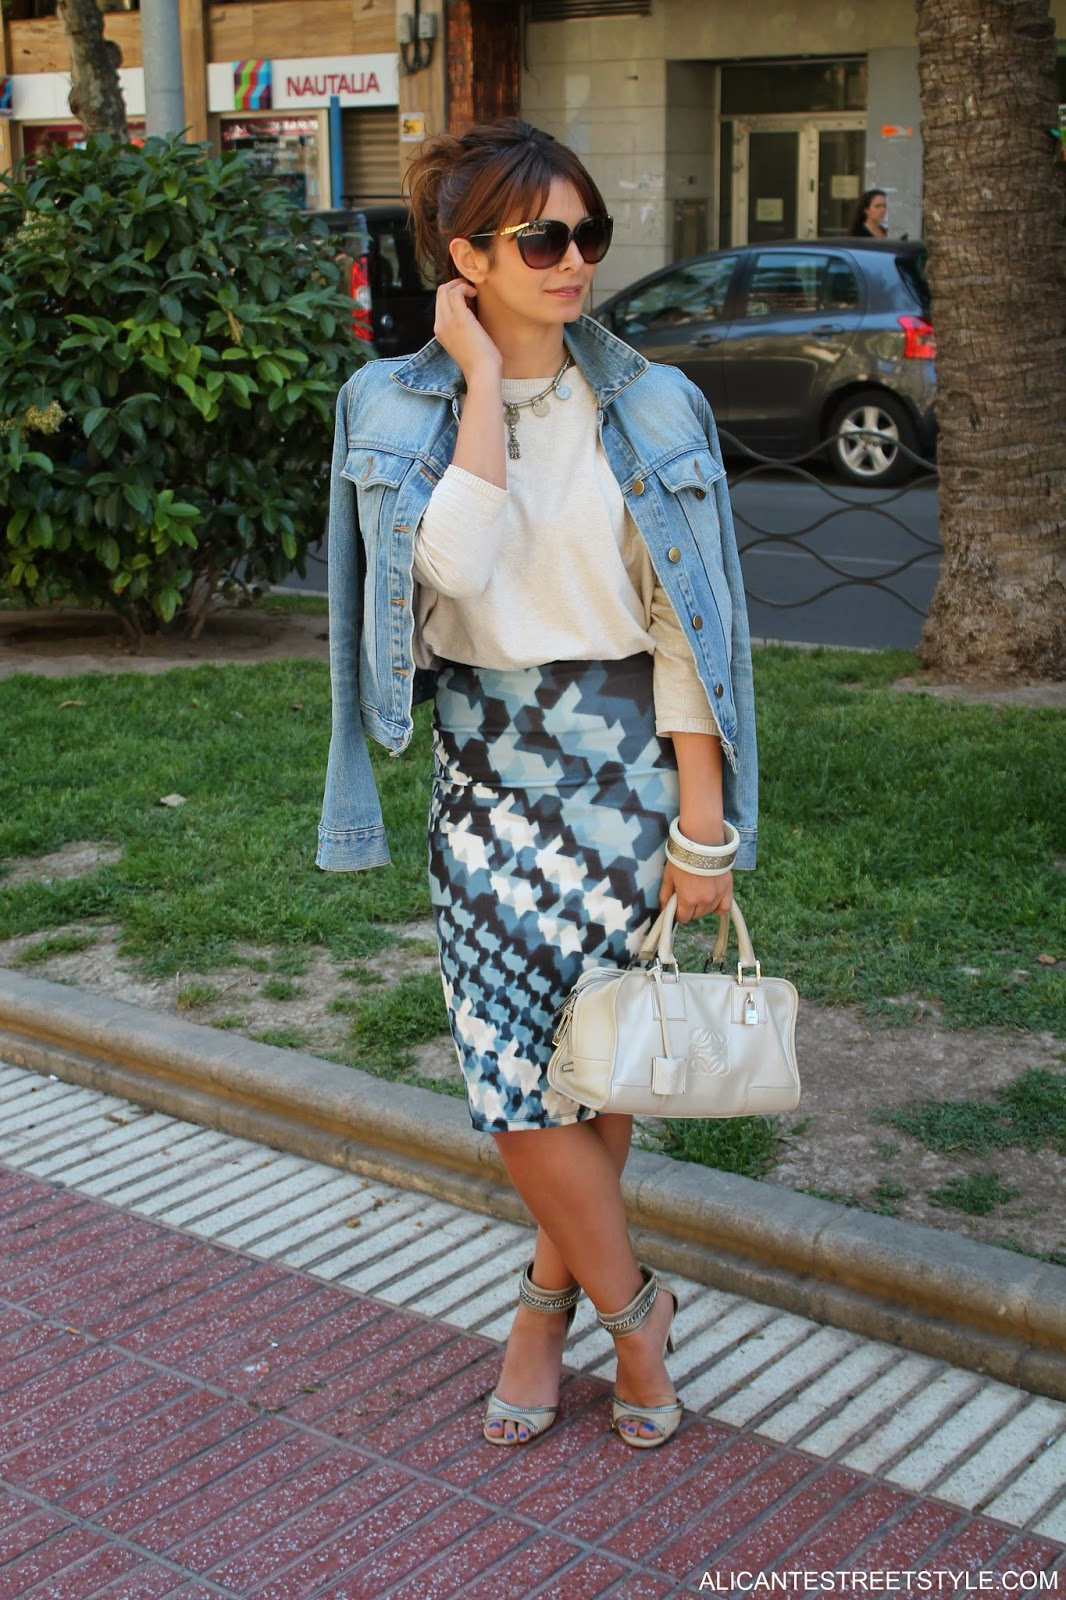 Alicante Street Style